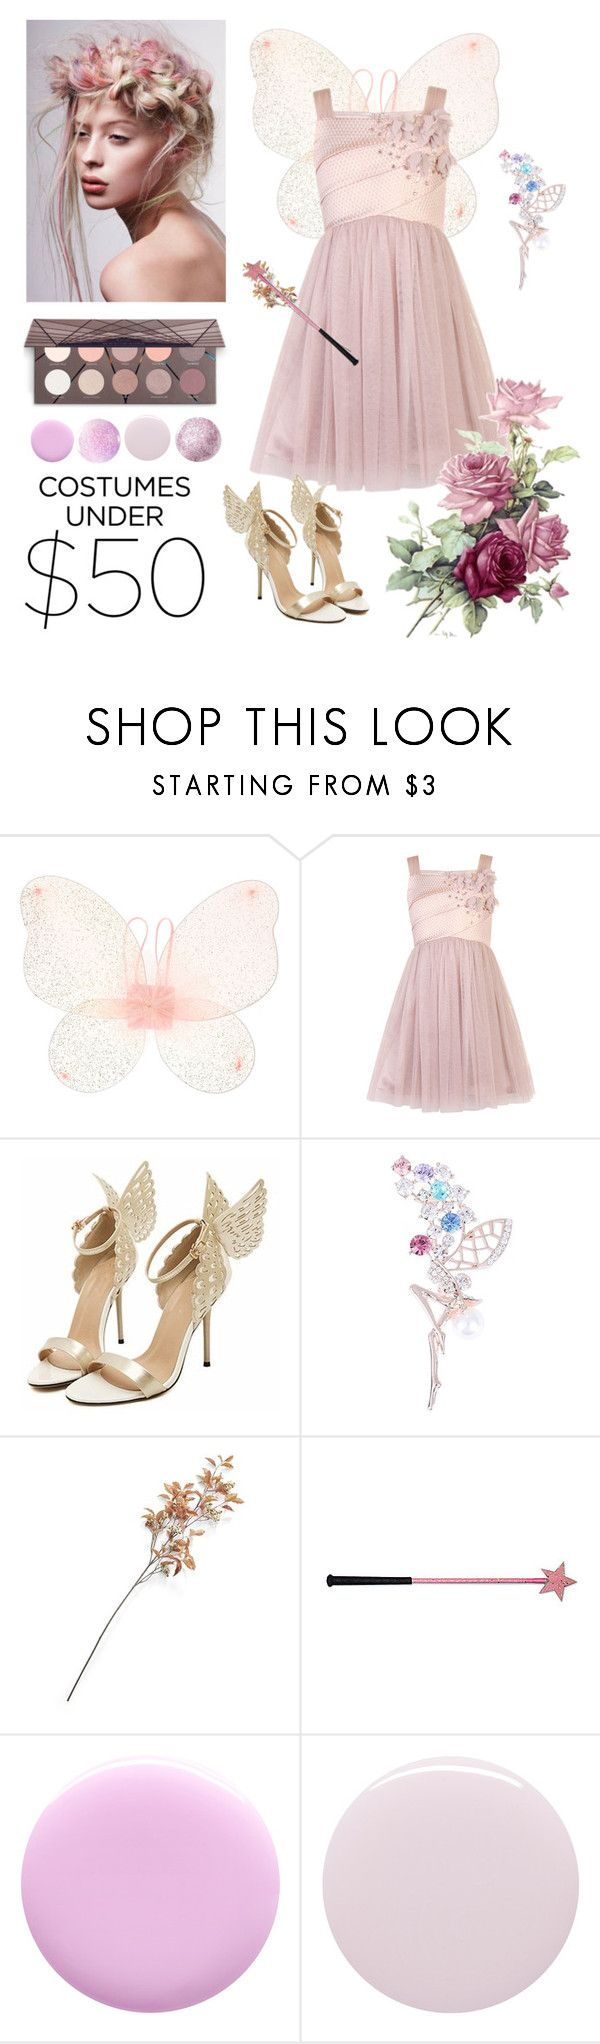 """Без названия #281"" by chaykovskaya13 ❤ liked on Polyvore featuring Crate and Barrel, Deborah Lippmann and Nails Inc."